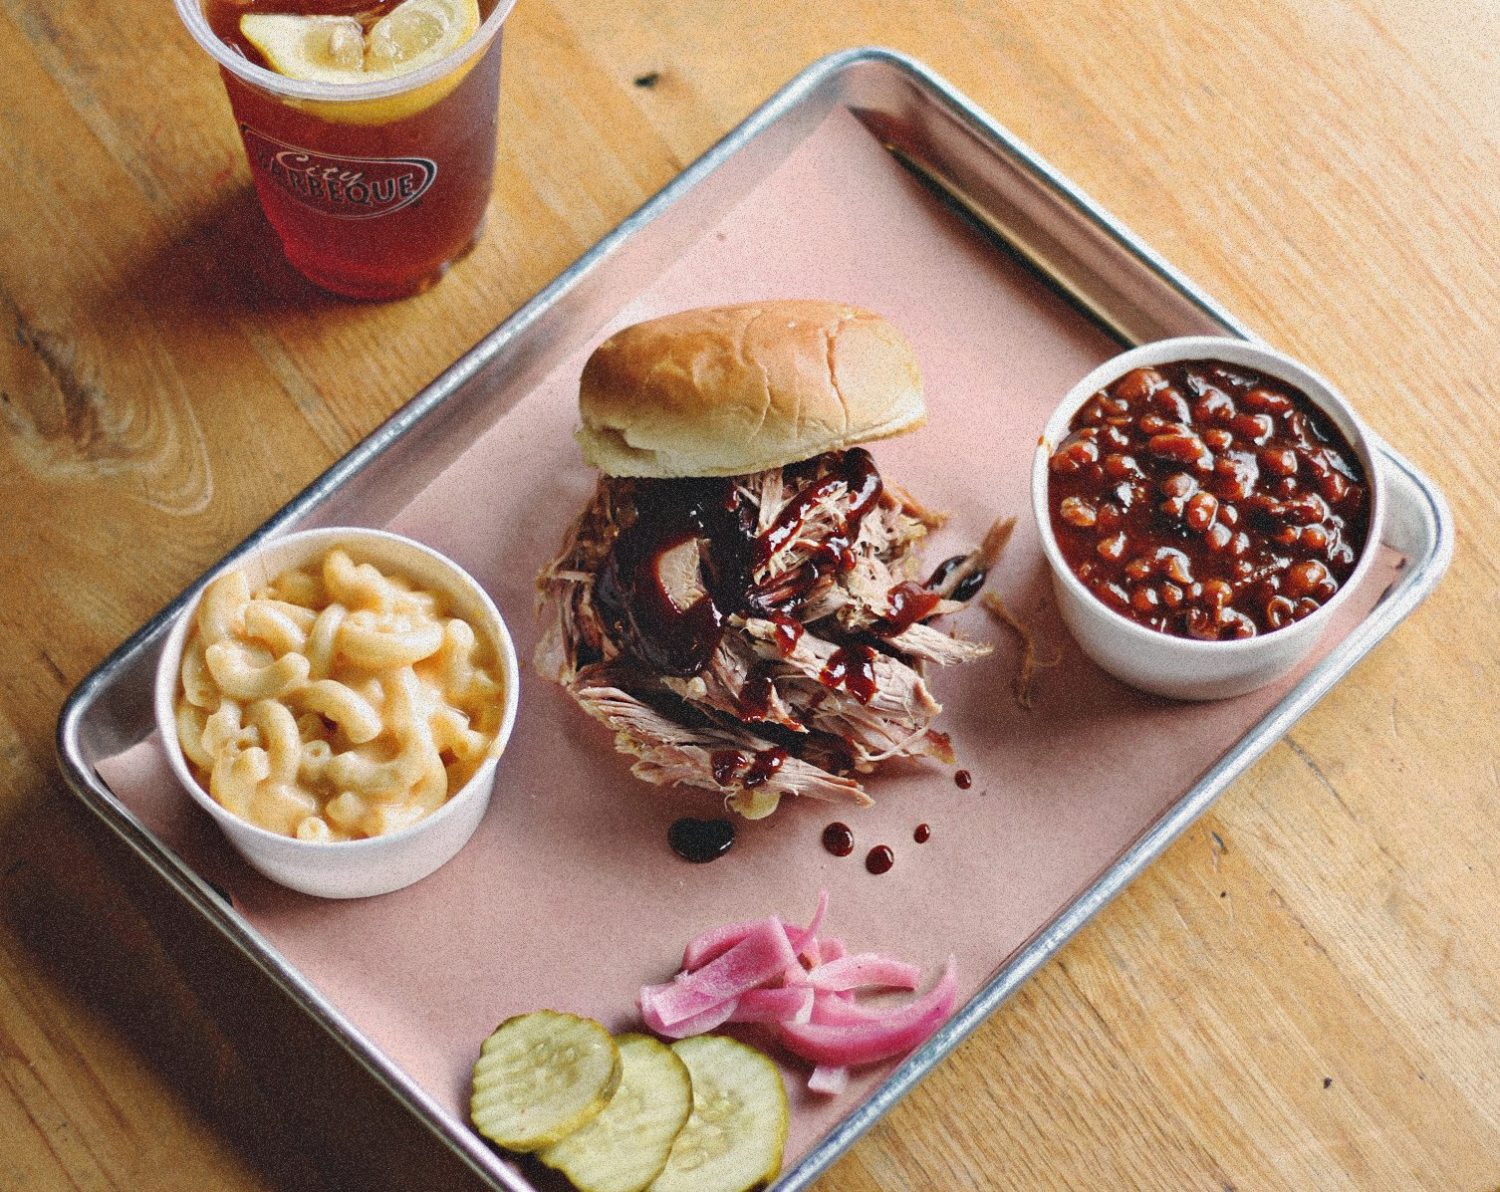 5 Things You Need To Know About Upcoming Restaurant City Barbeque